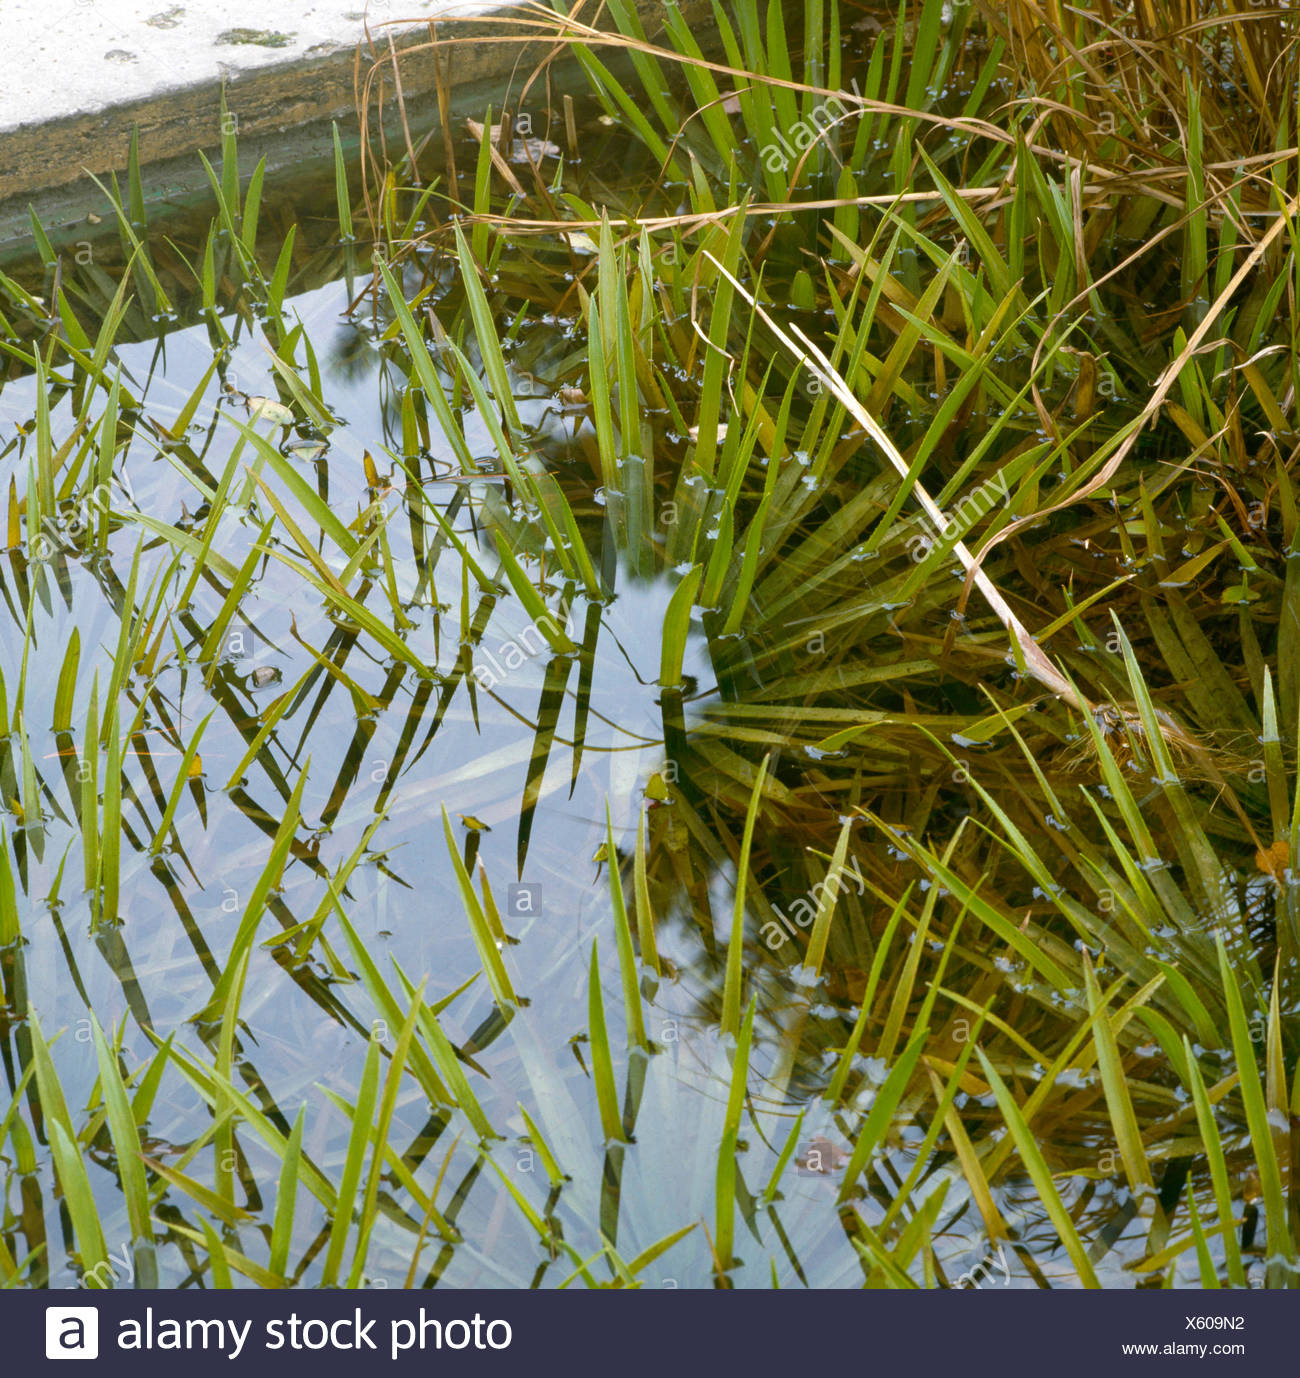 Stratiotes aloides - Water Soldiers   WPL046968 - Stock Image